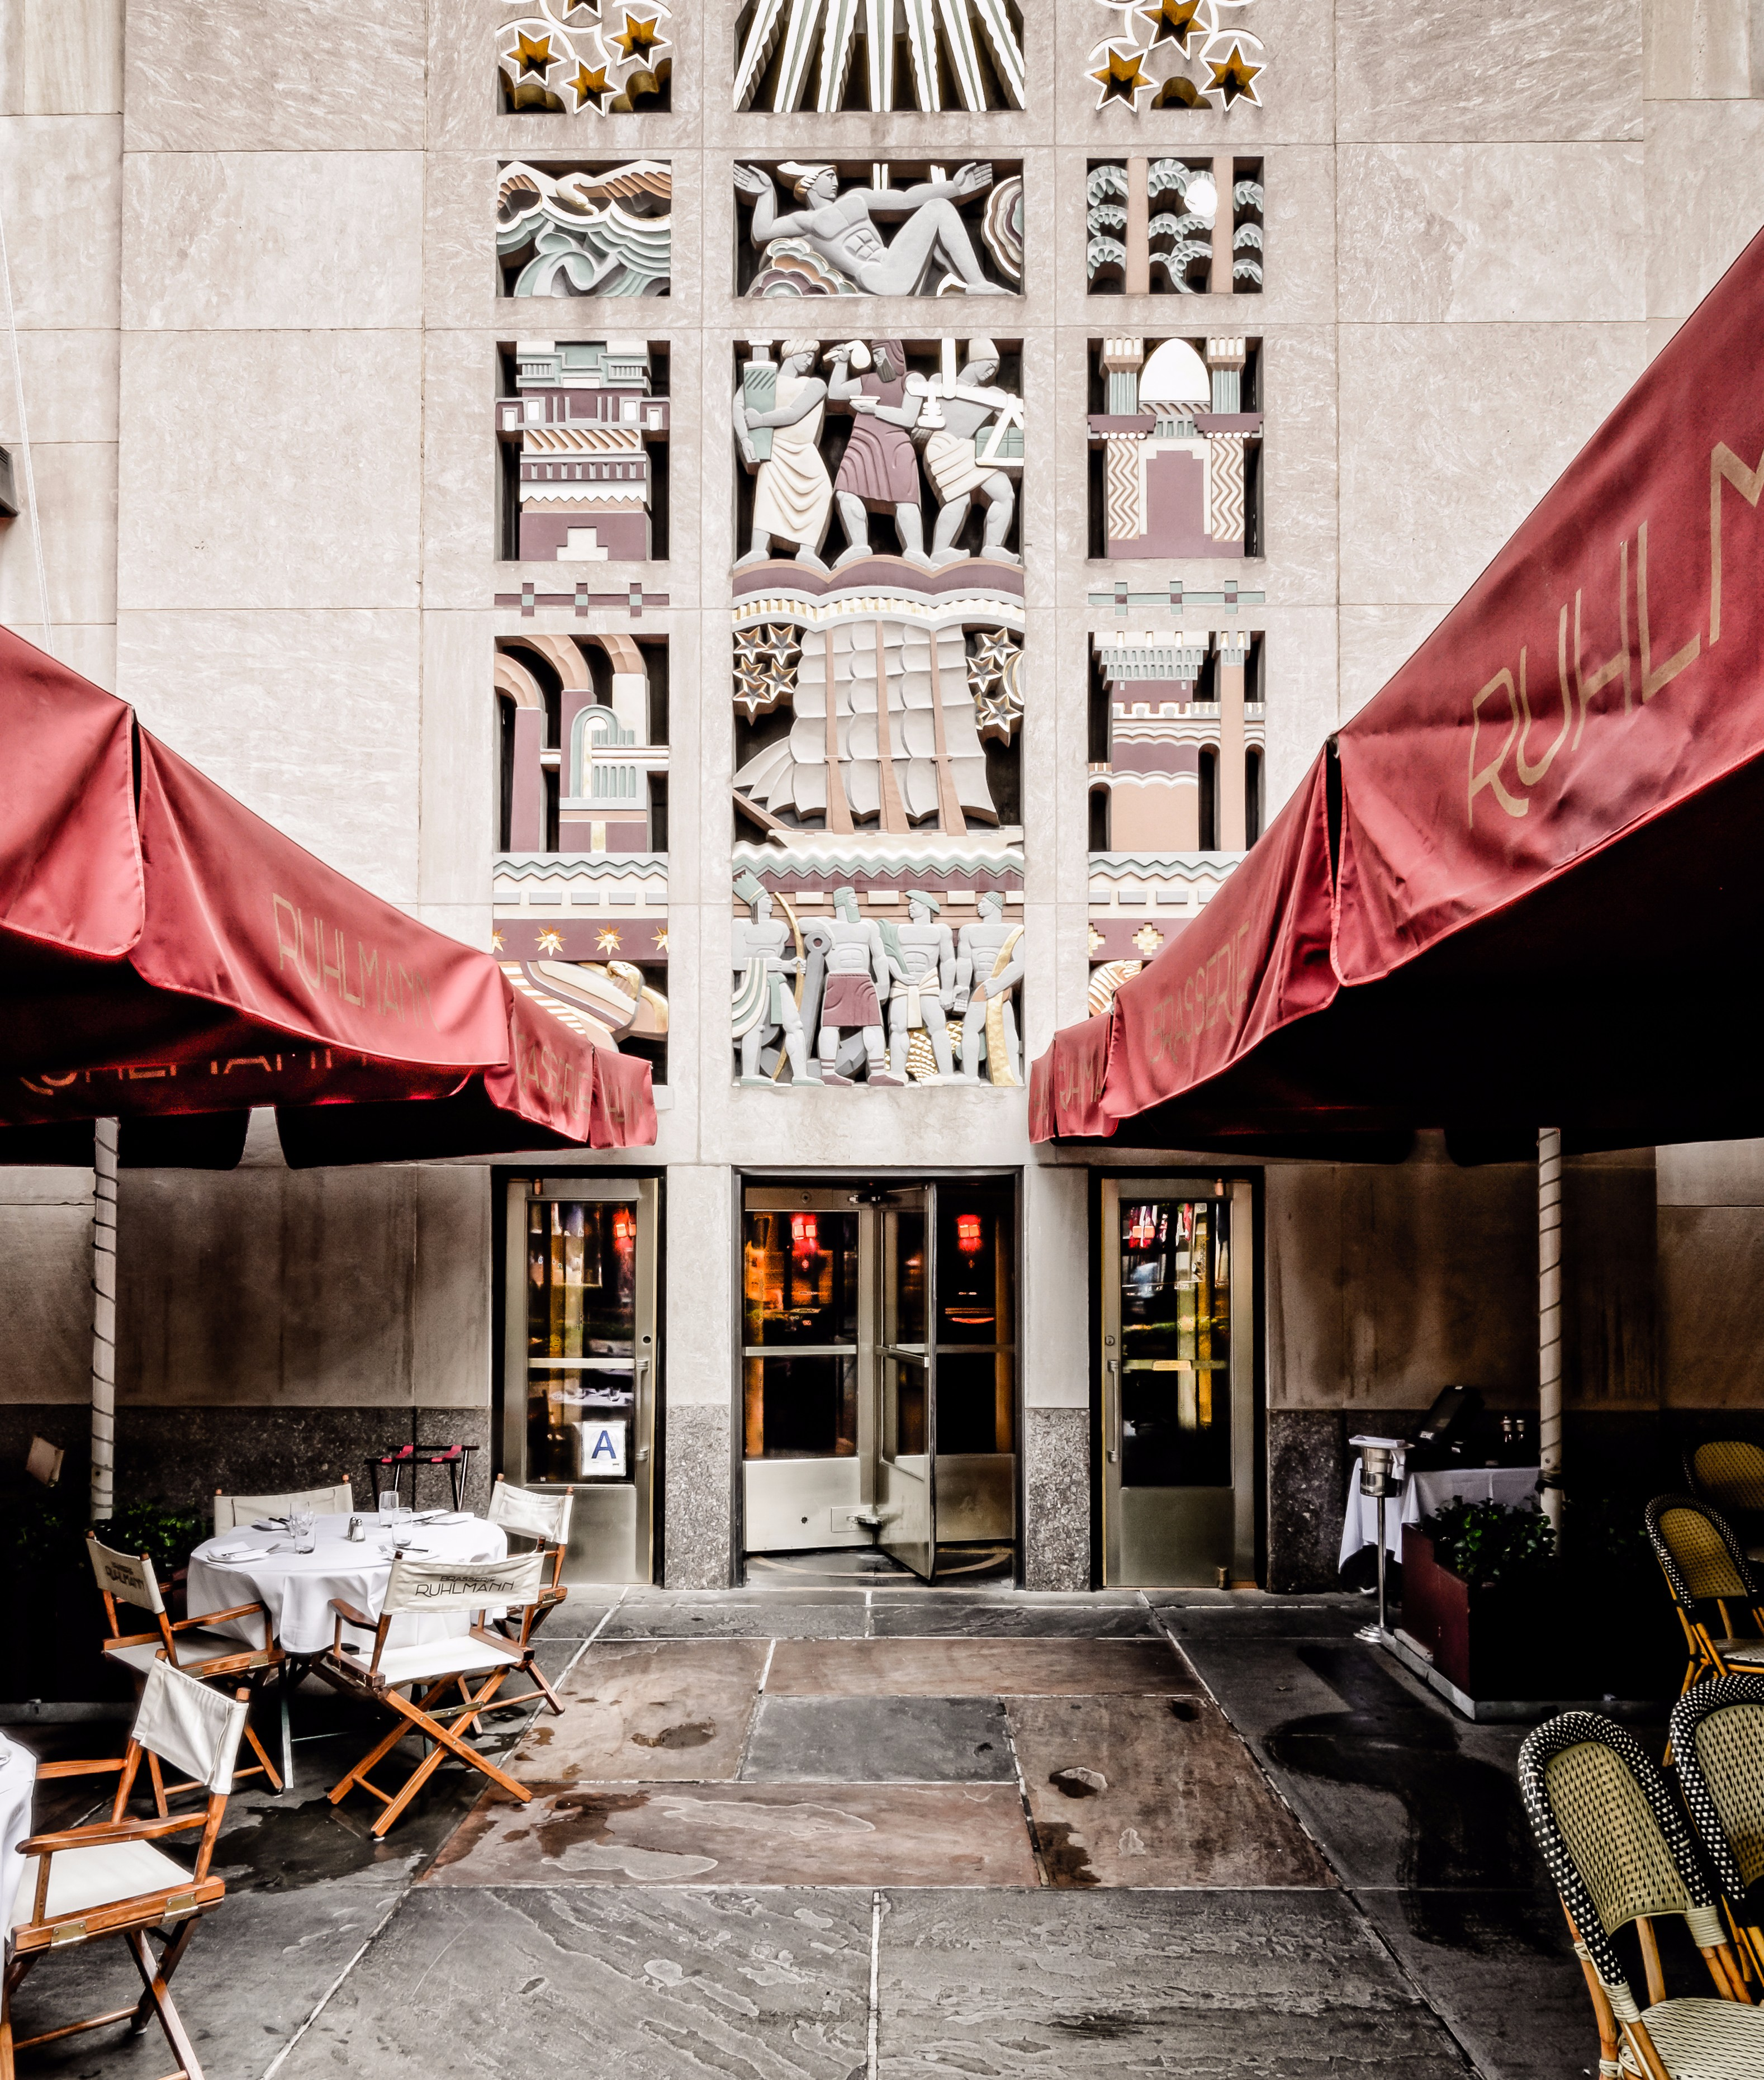 The entrance of Brasserie Ruhlmann in an art deco building with red awnings